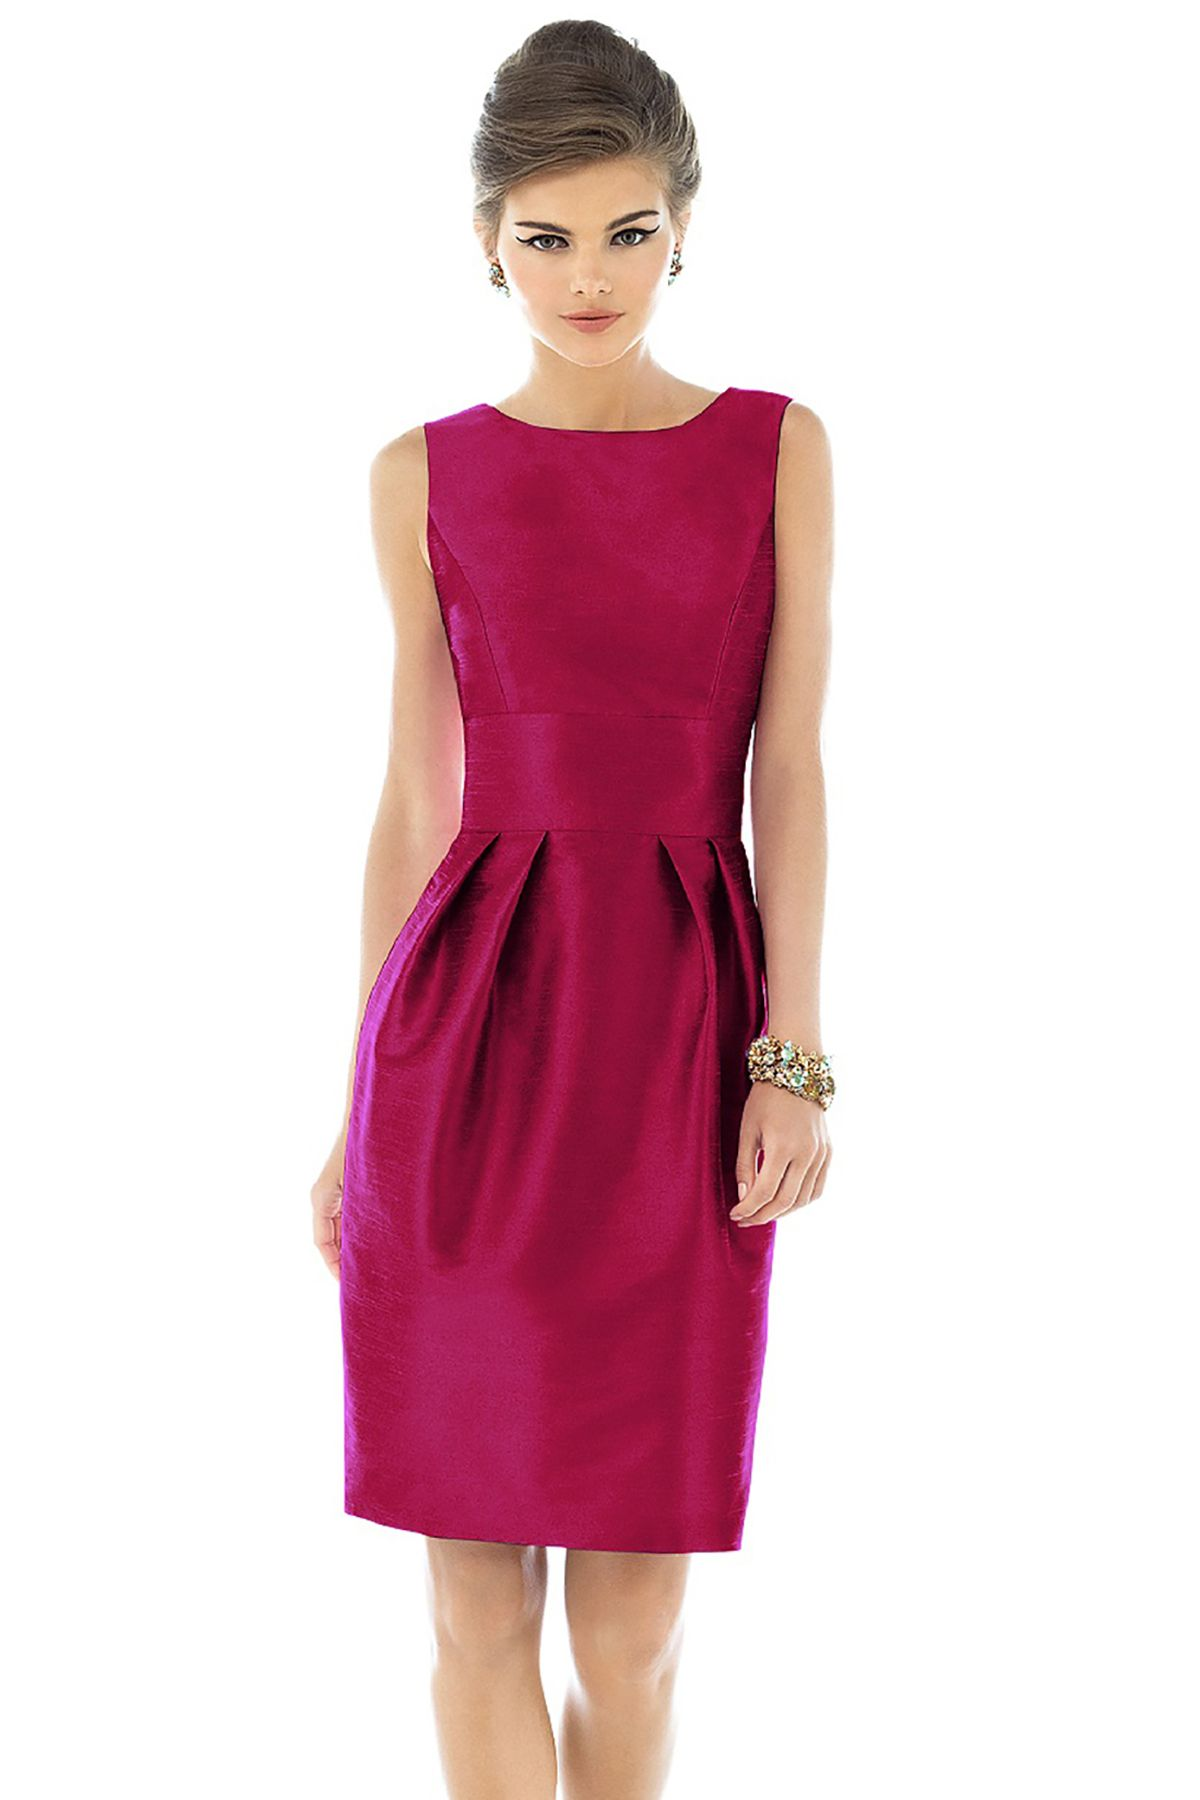 6daf433dedd Shop Alfred Sung Bridesmaid Dress - D522 Quick Delivery in Dupioni at  Weddington Way. Find the perfect made-to-order bridesmaid dresses for your  bridal ...